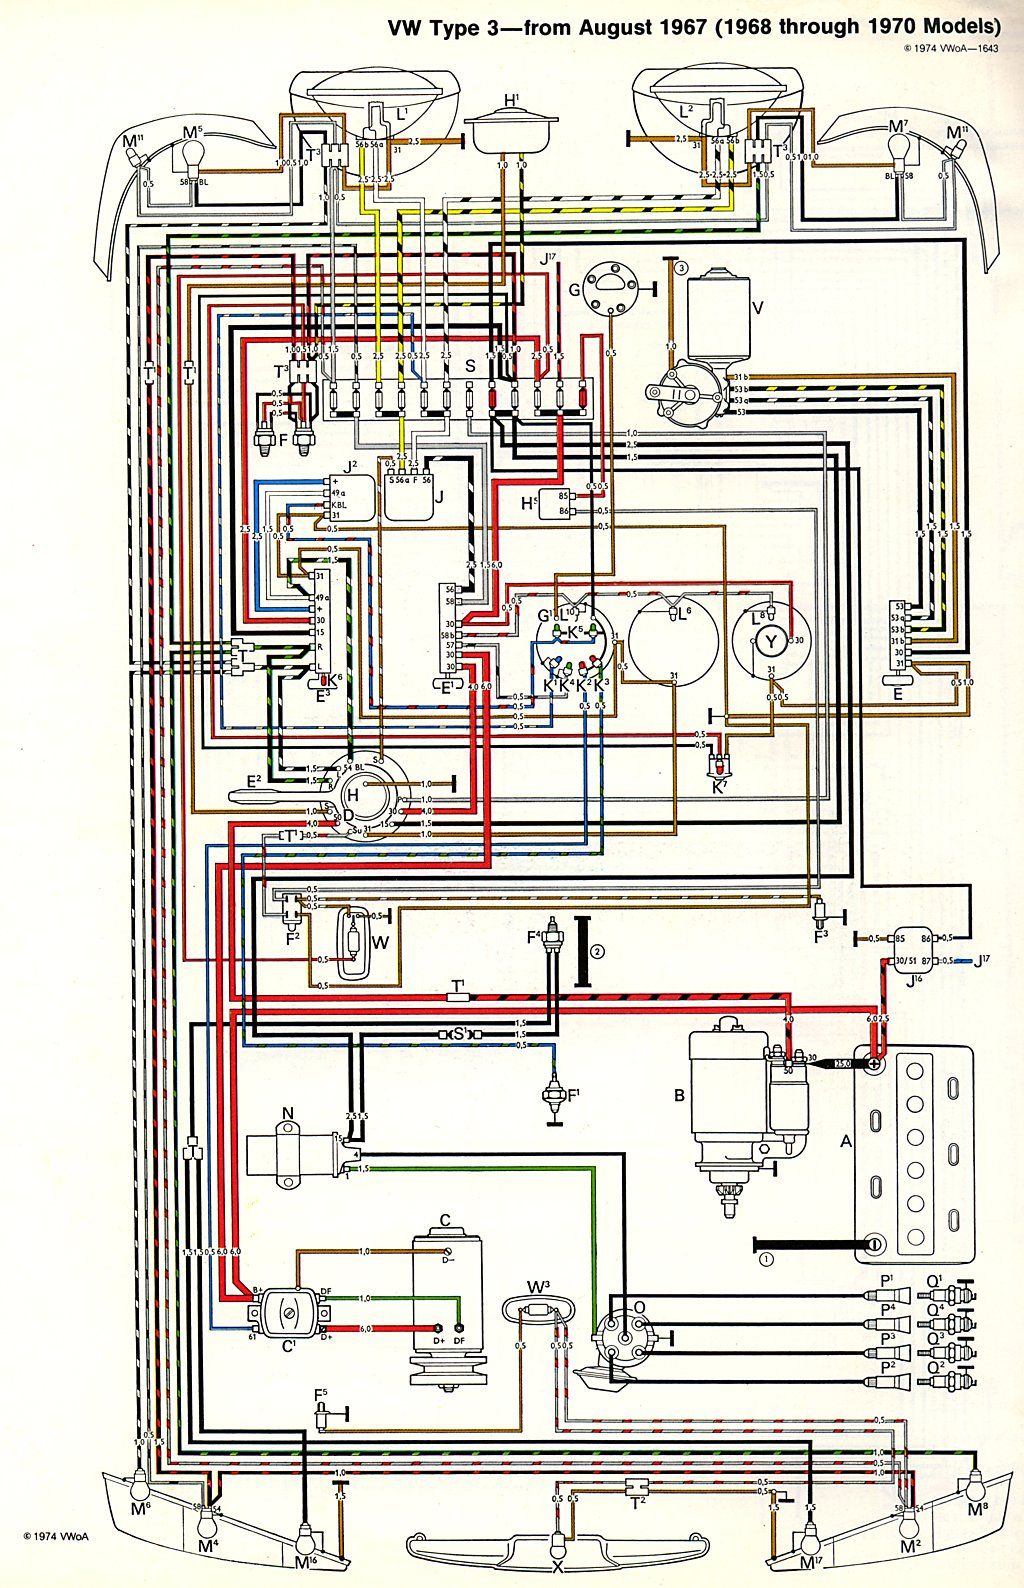 Vw Type 3 Wiring Diagram Will Be A Thing 72 Harness Thesamba Com Diagrams Rh Fuel Injection